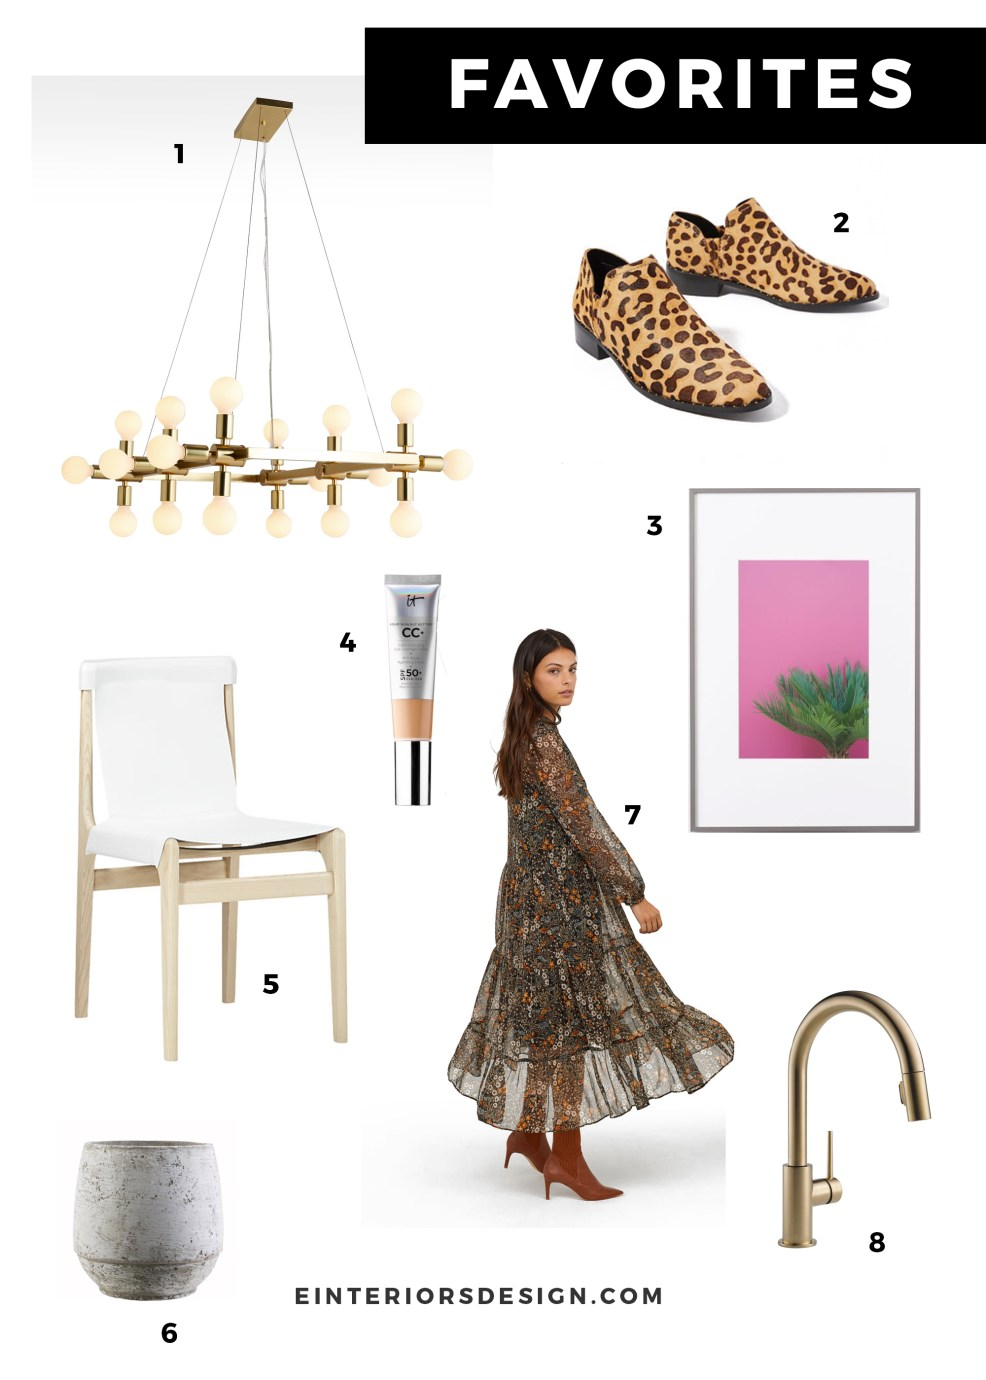 ASOS | WEST ELM | WORLD MARKET | HOME DECOR | WEEKEND SALES + FRIDAY FAVORITES FEATURED BY TOP DESIGN BLOG E.INTERIORS